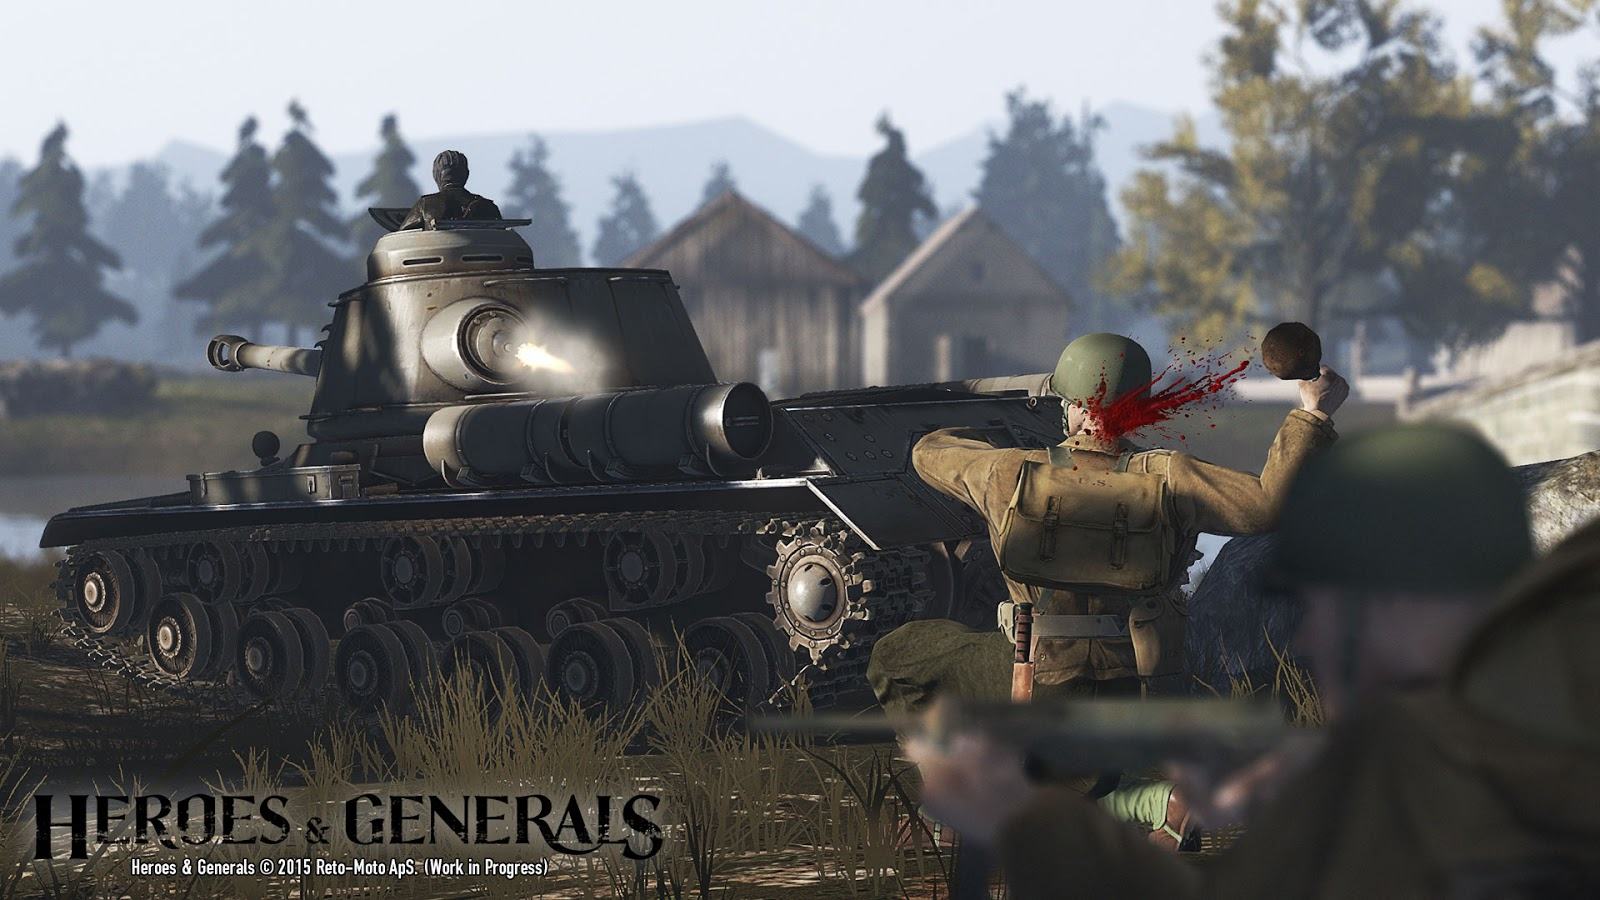 Heroes and generals bad matchmaking